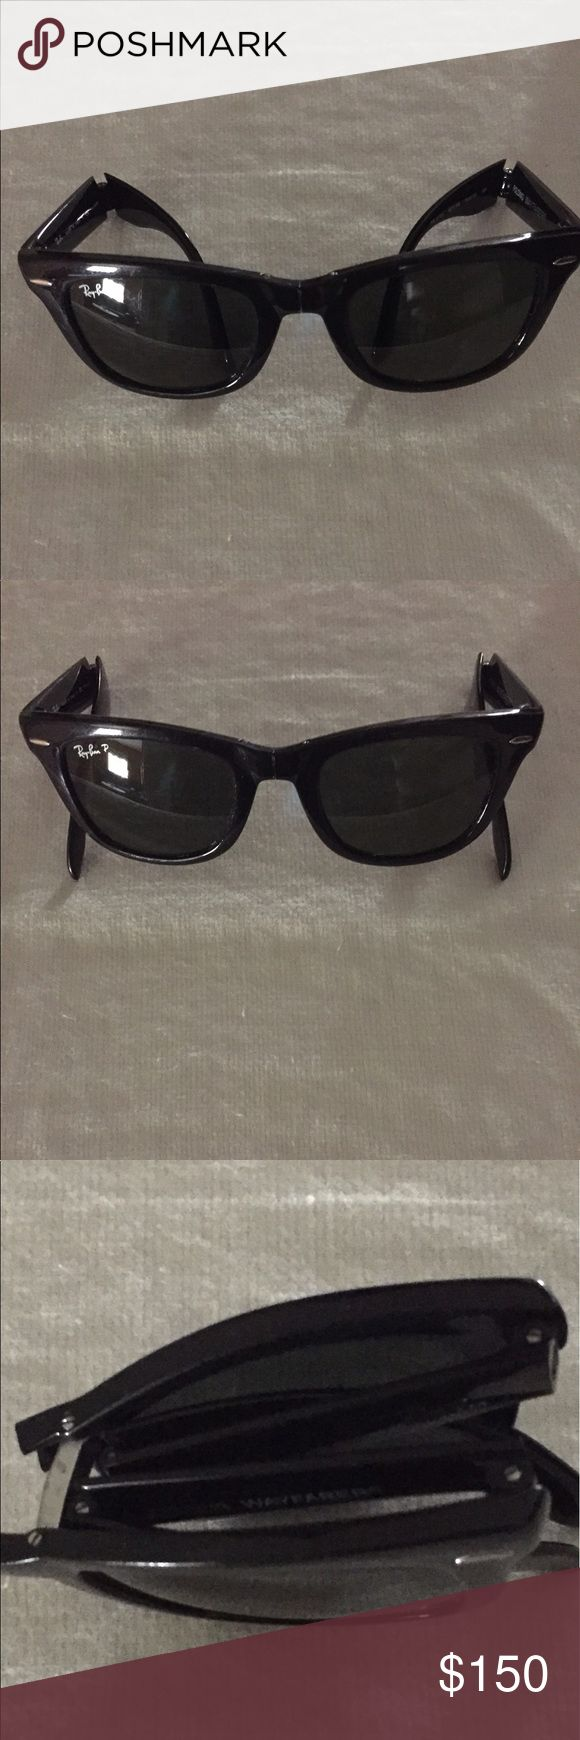 Ray-Ban Wayfarer Folding Classic Sunglasses This is a pair of polarized black frame Ray Ban folding classic sunglasses. There is a little wear on each side from normal wear and being folded while in the case as shown in the pictures. Ray-Ban Accessories Sunglasses